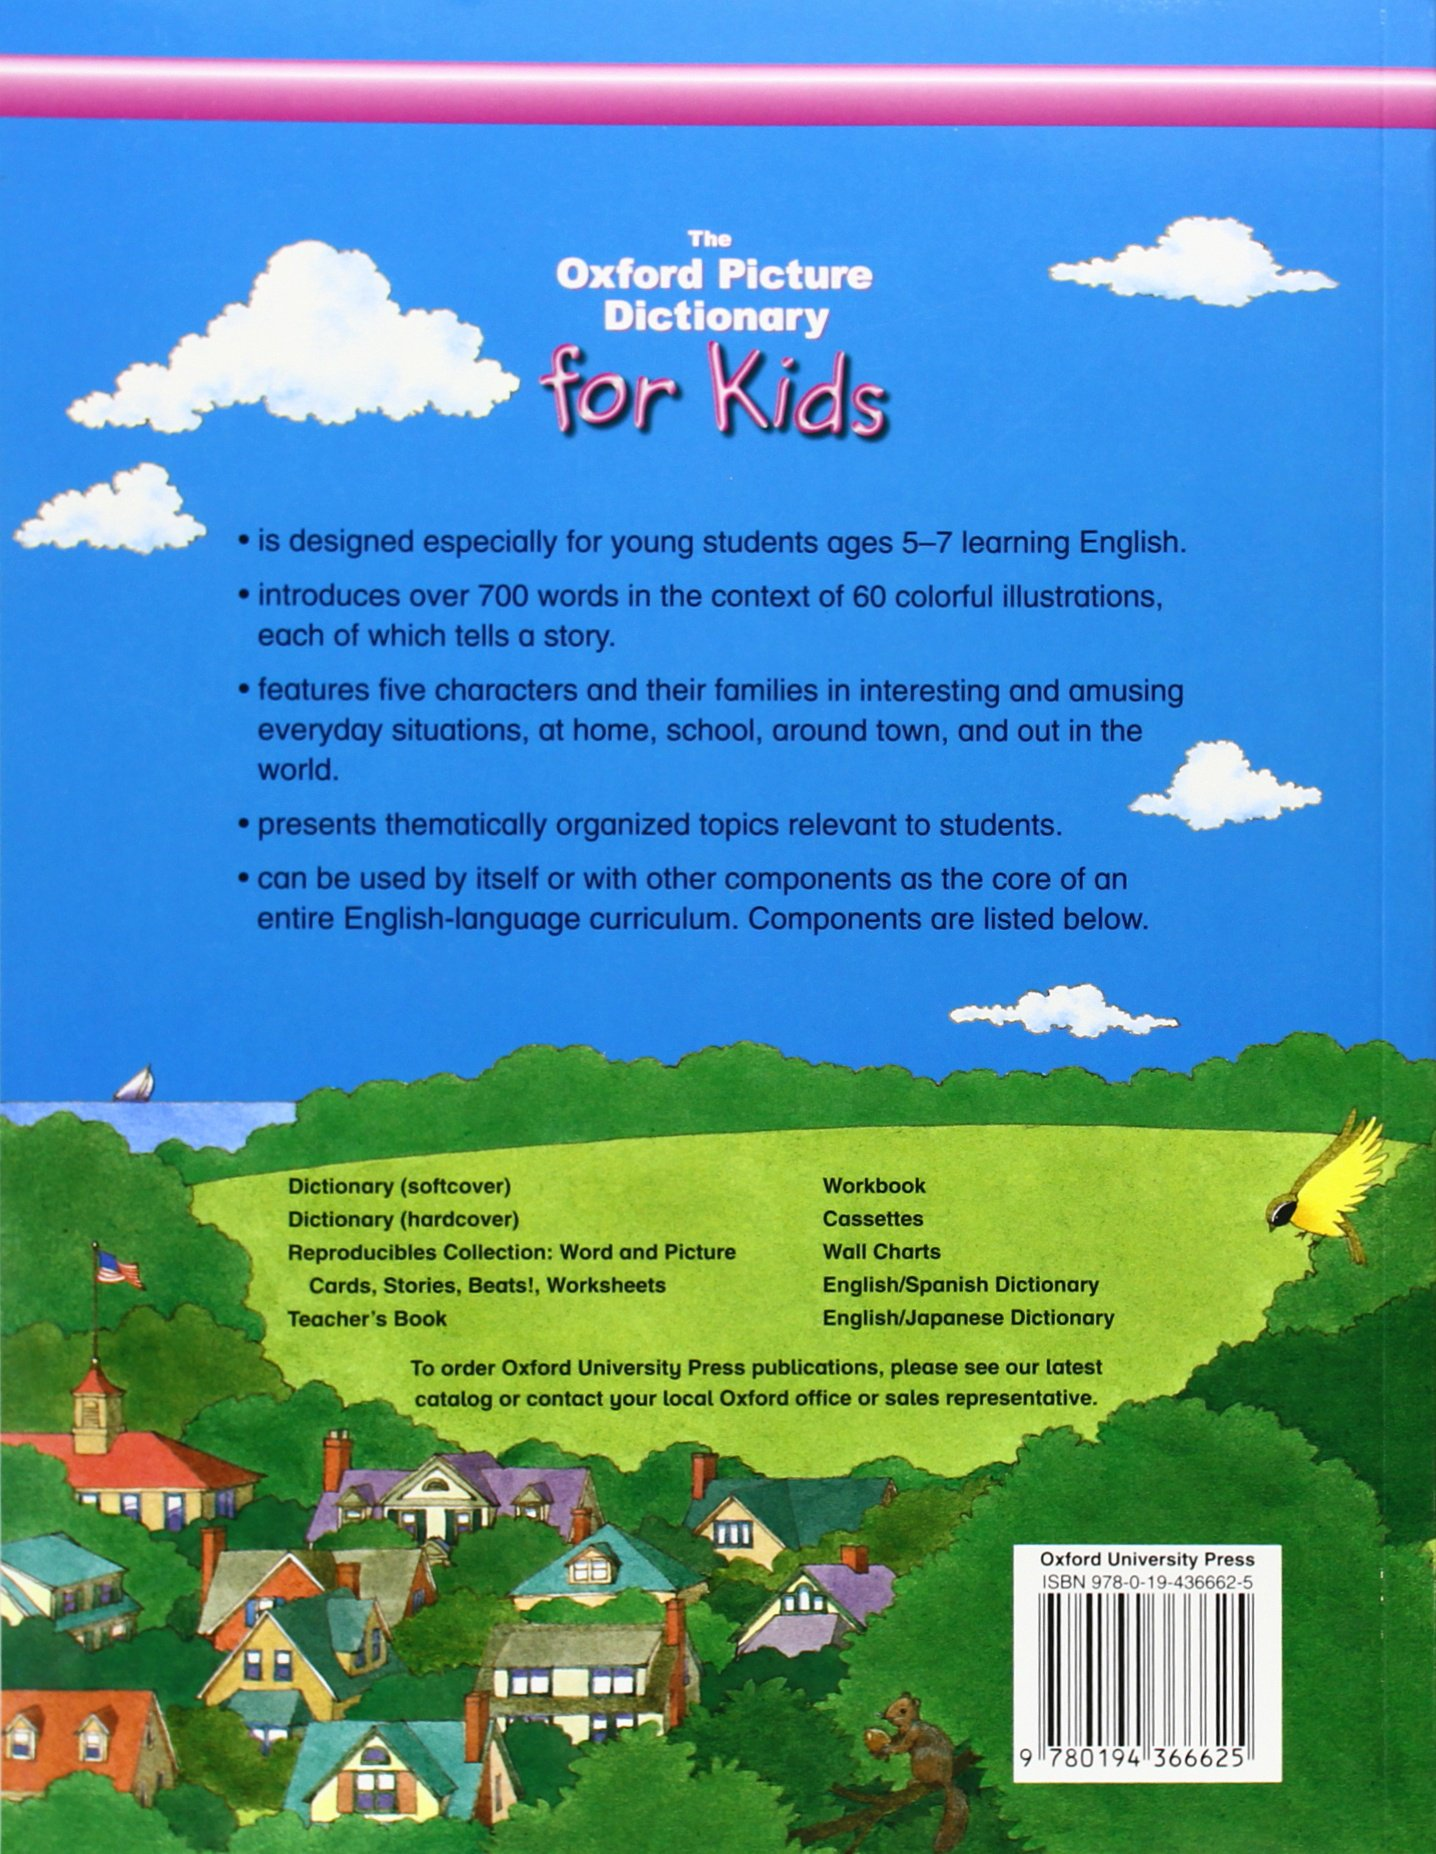 The oxford picture dictionary for kids english spanish edition amazon co uk joan ross keyes 9780194366625 books